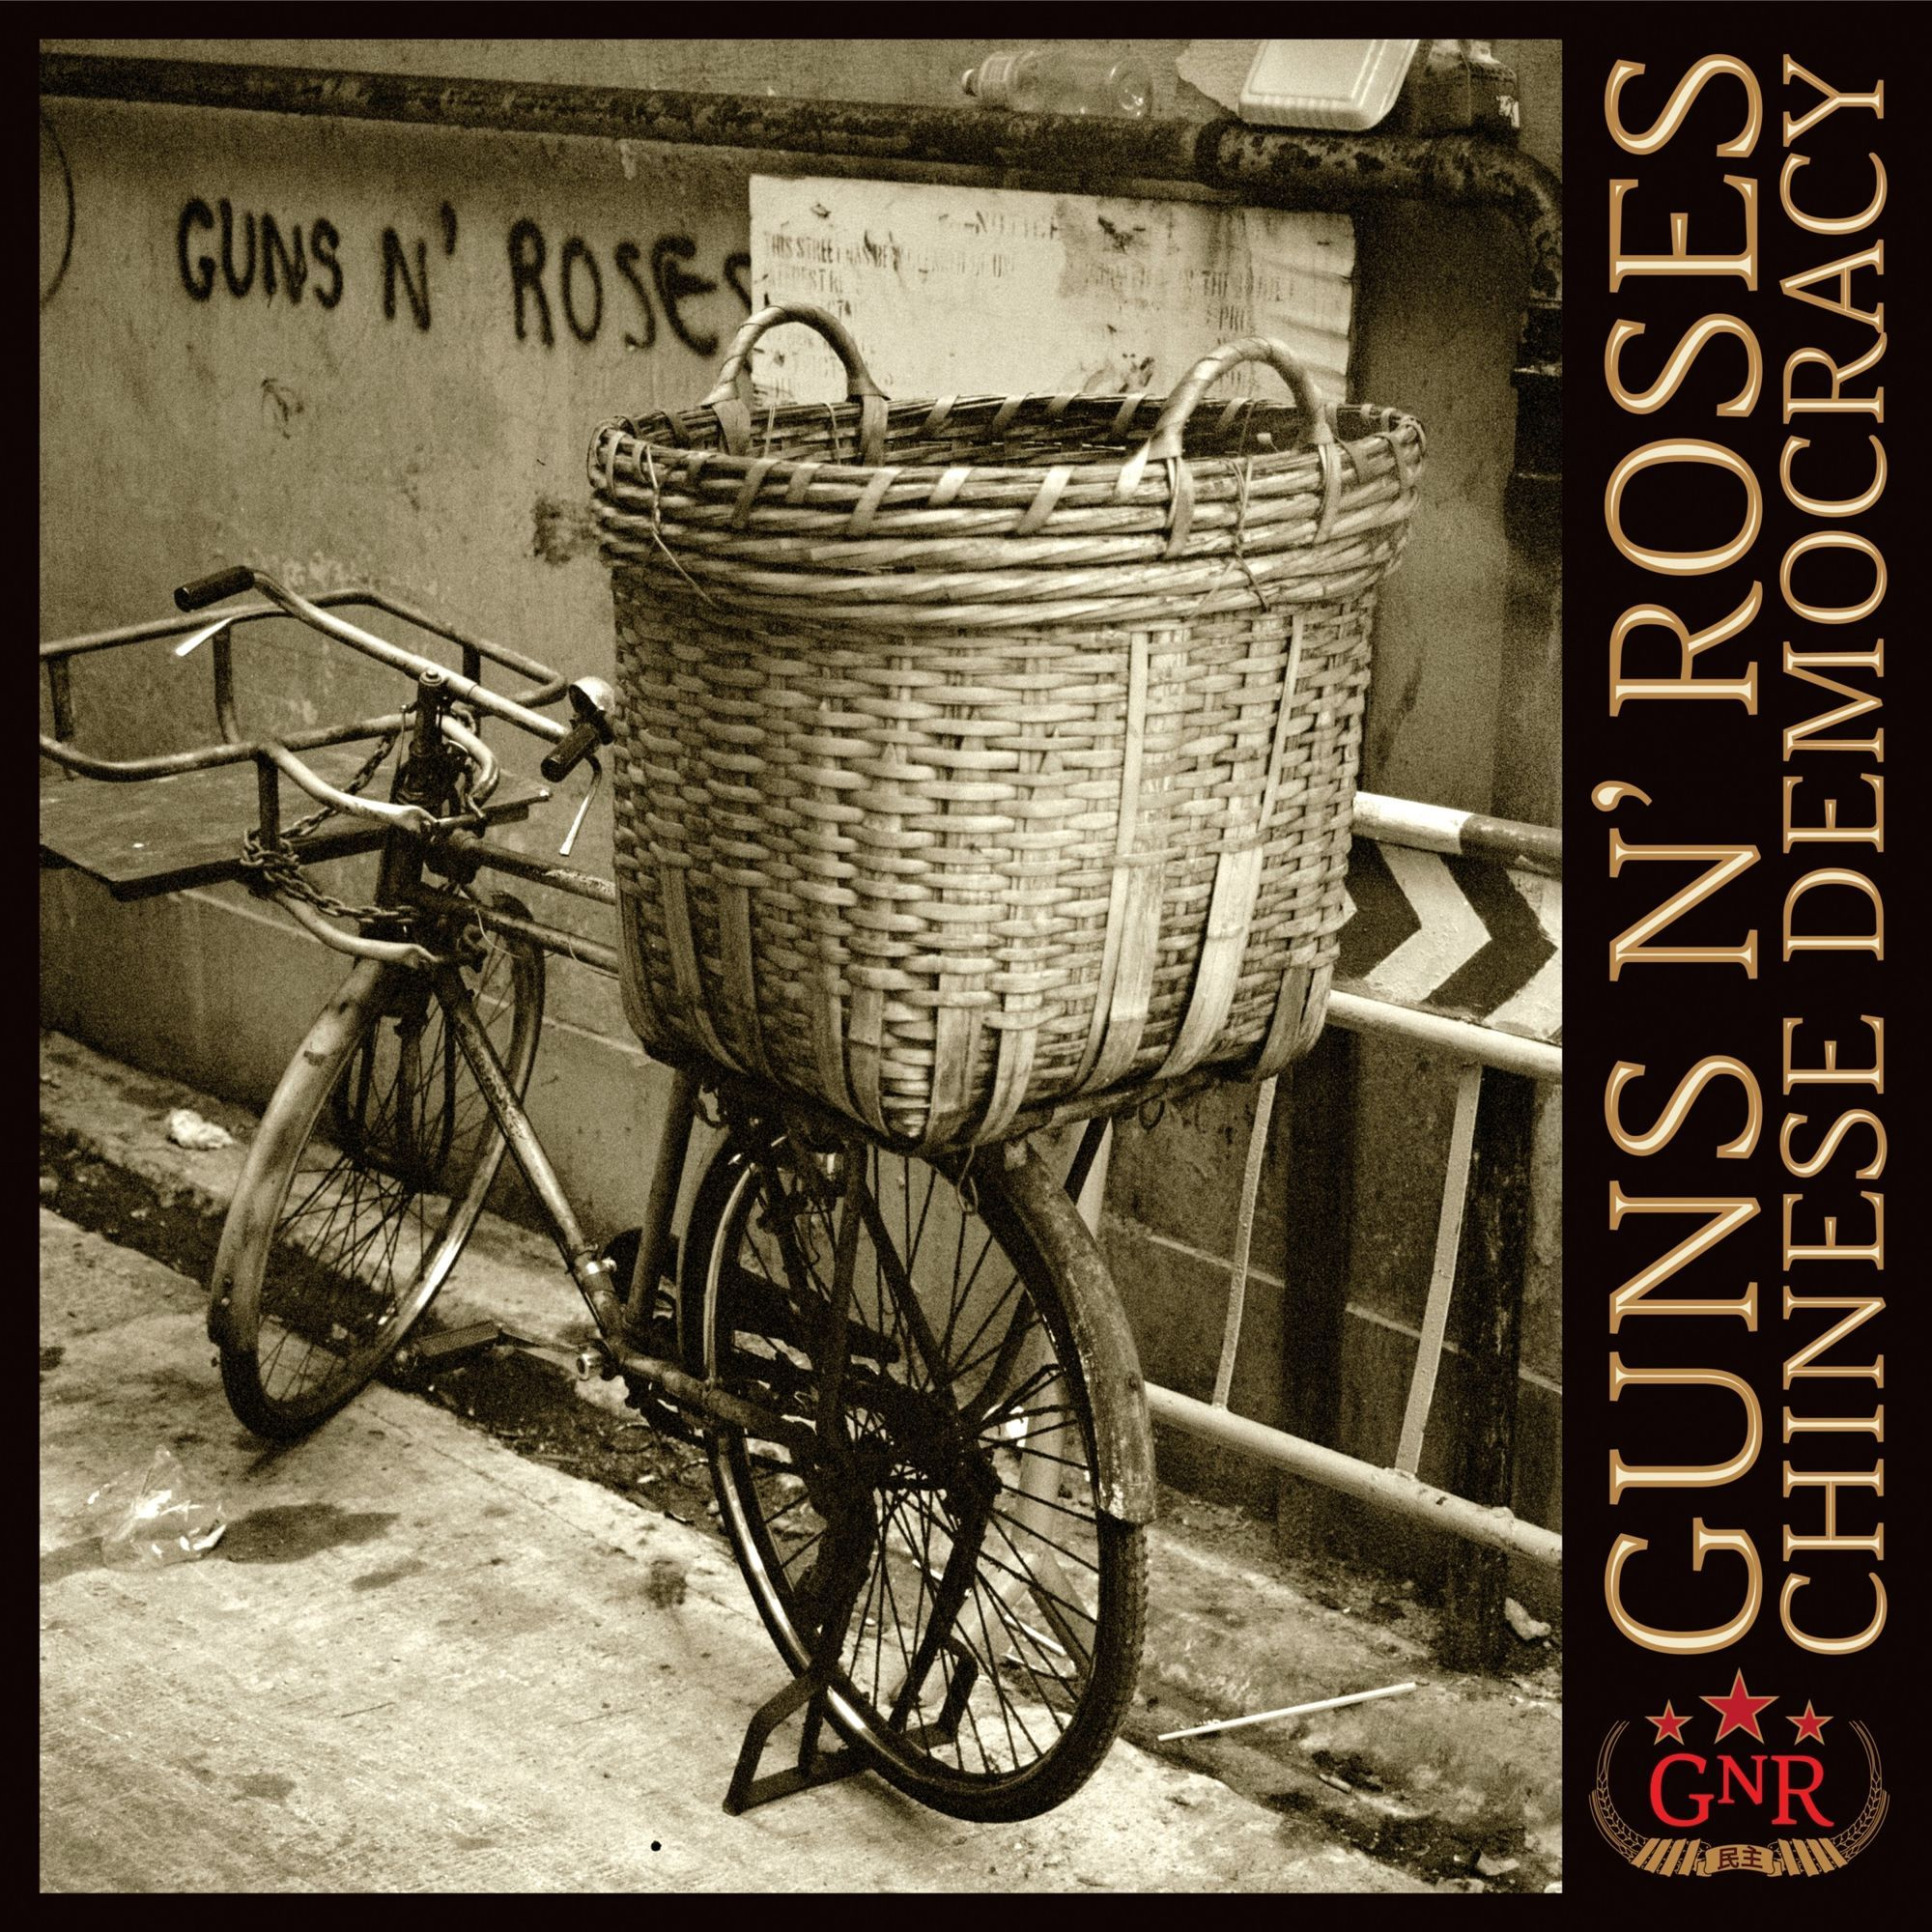 Guns n roses critical solution - Chinese Democracy Guns N Roses 2008 1 6 10 Guns N Roses Pinterest Chinese Democracy Metal Albums And Heavy Metal